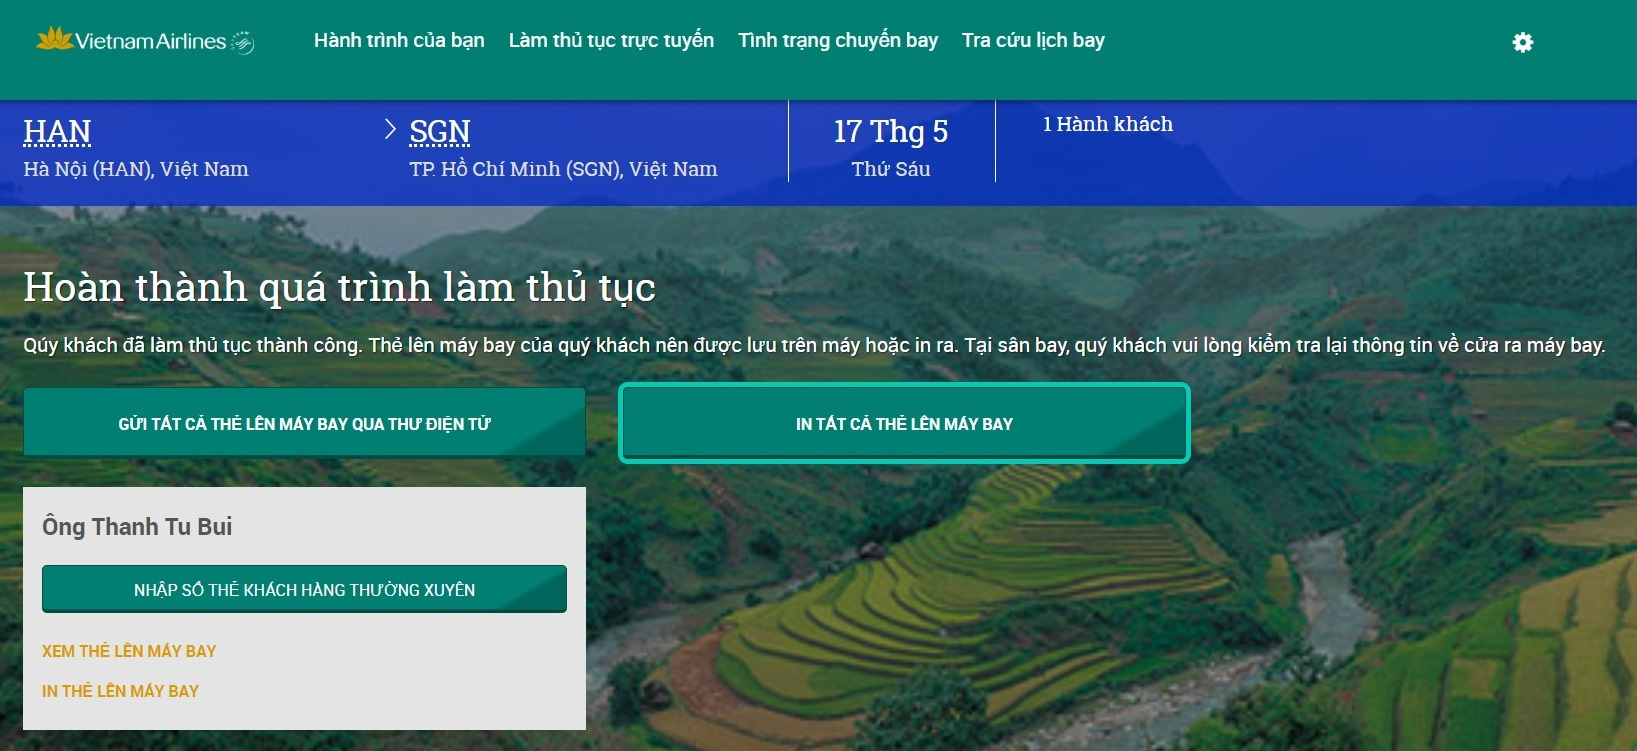 huong-dan-check-in-online-check-in-truc-tuyen-ve-may-bay-5d19b320dba6e